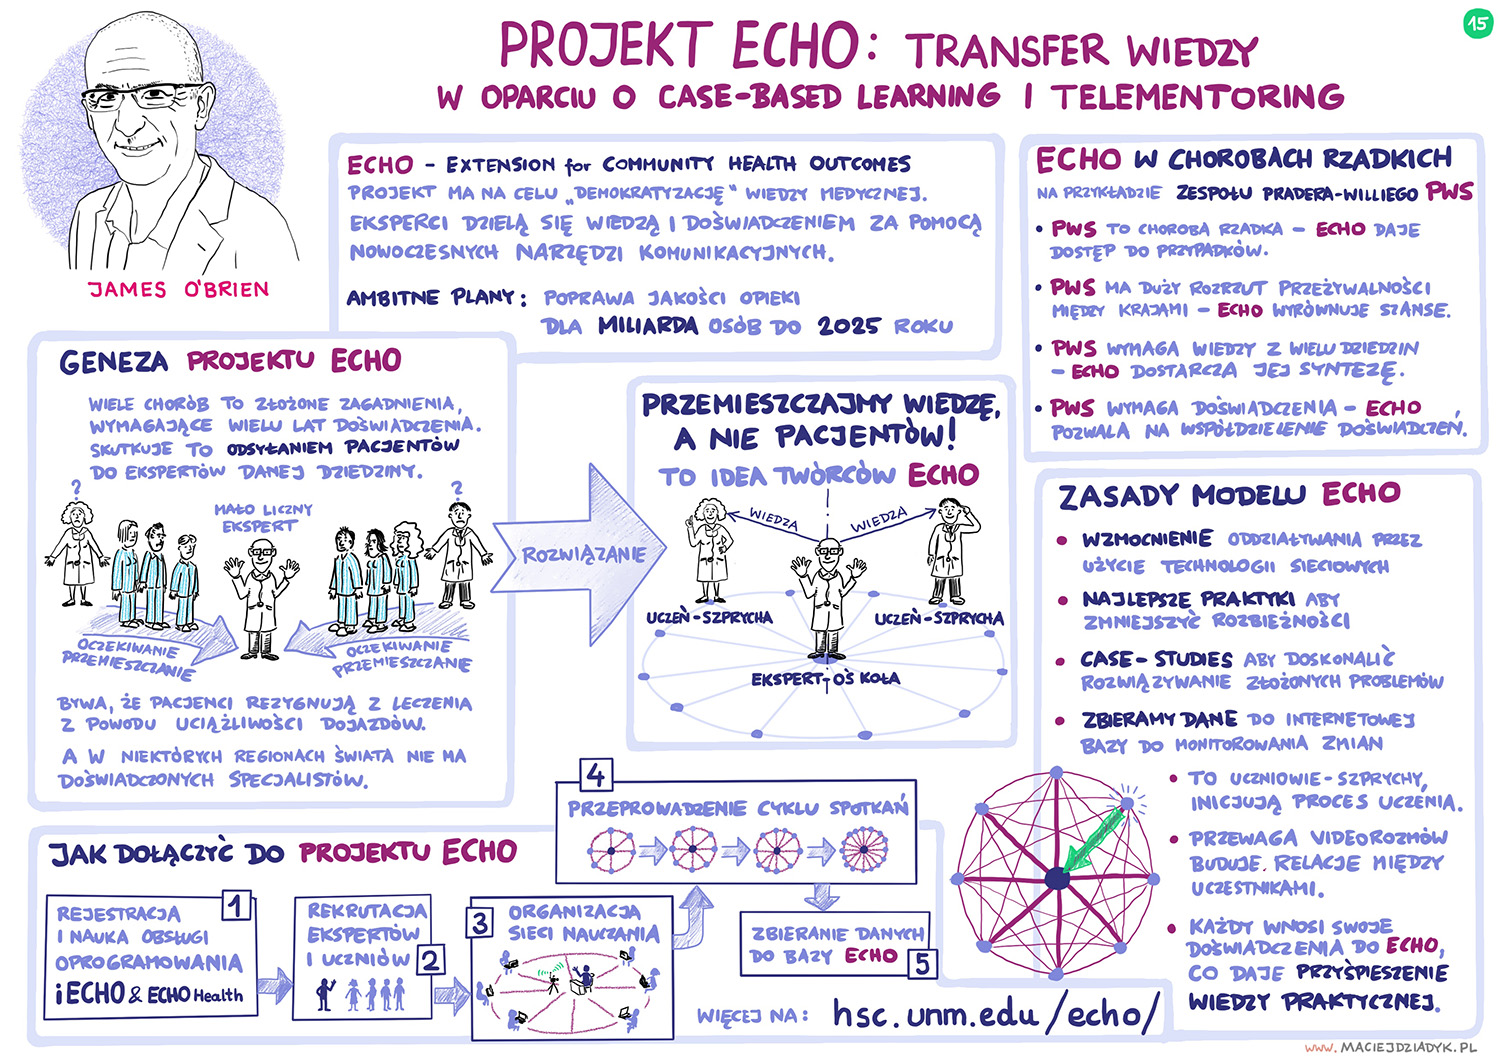 Projekt ECHO: transfer wiedzy w oparciu o case-based learning i telementoring. James O'Brien